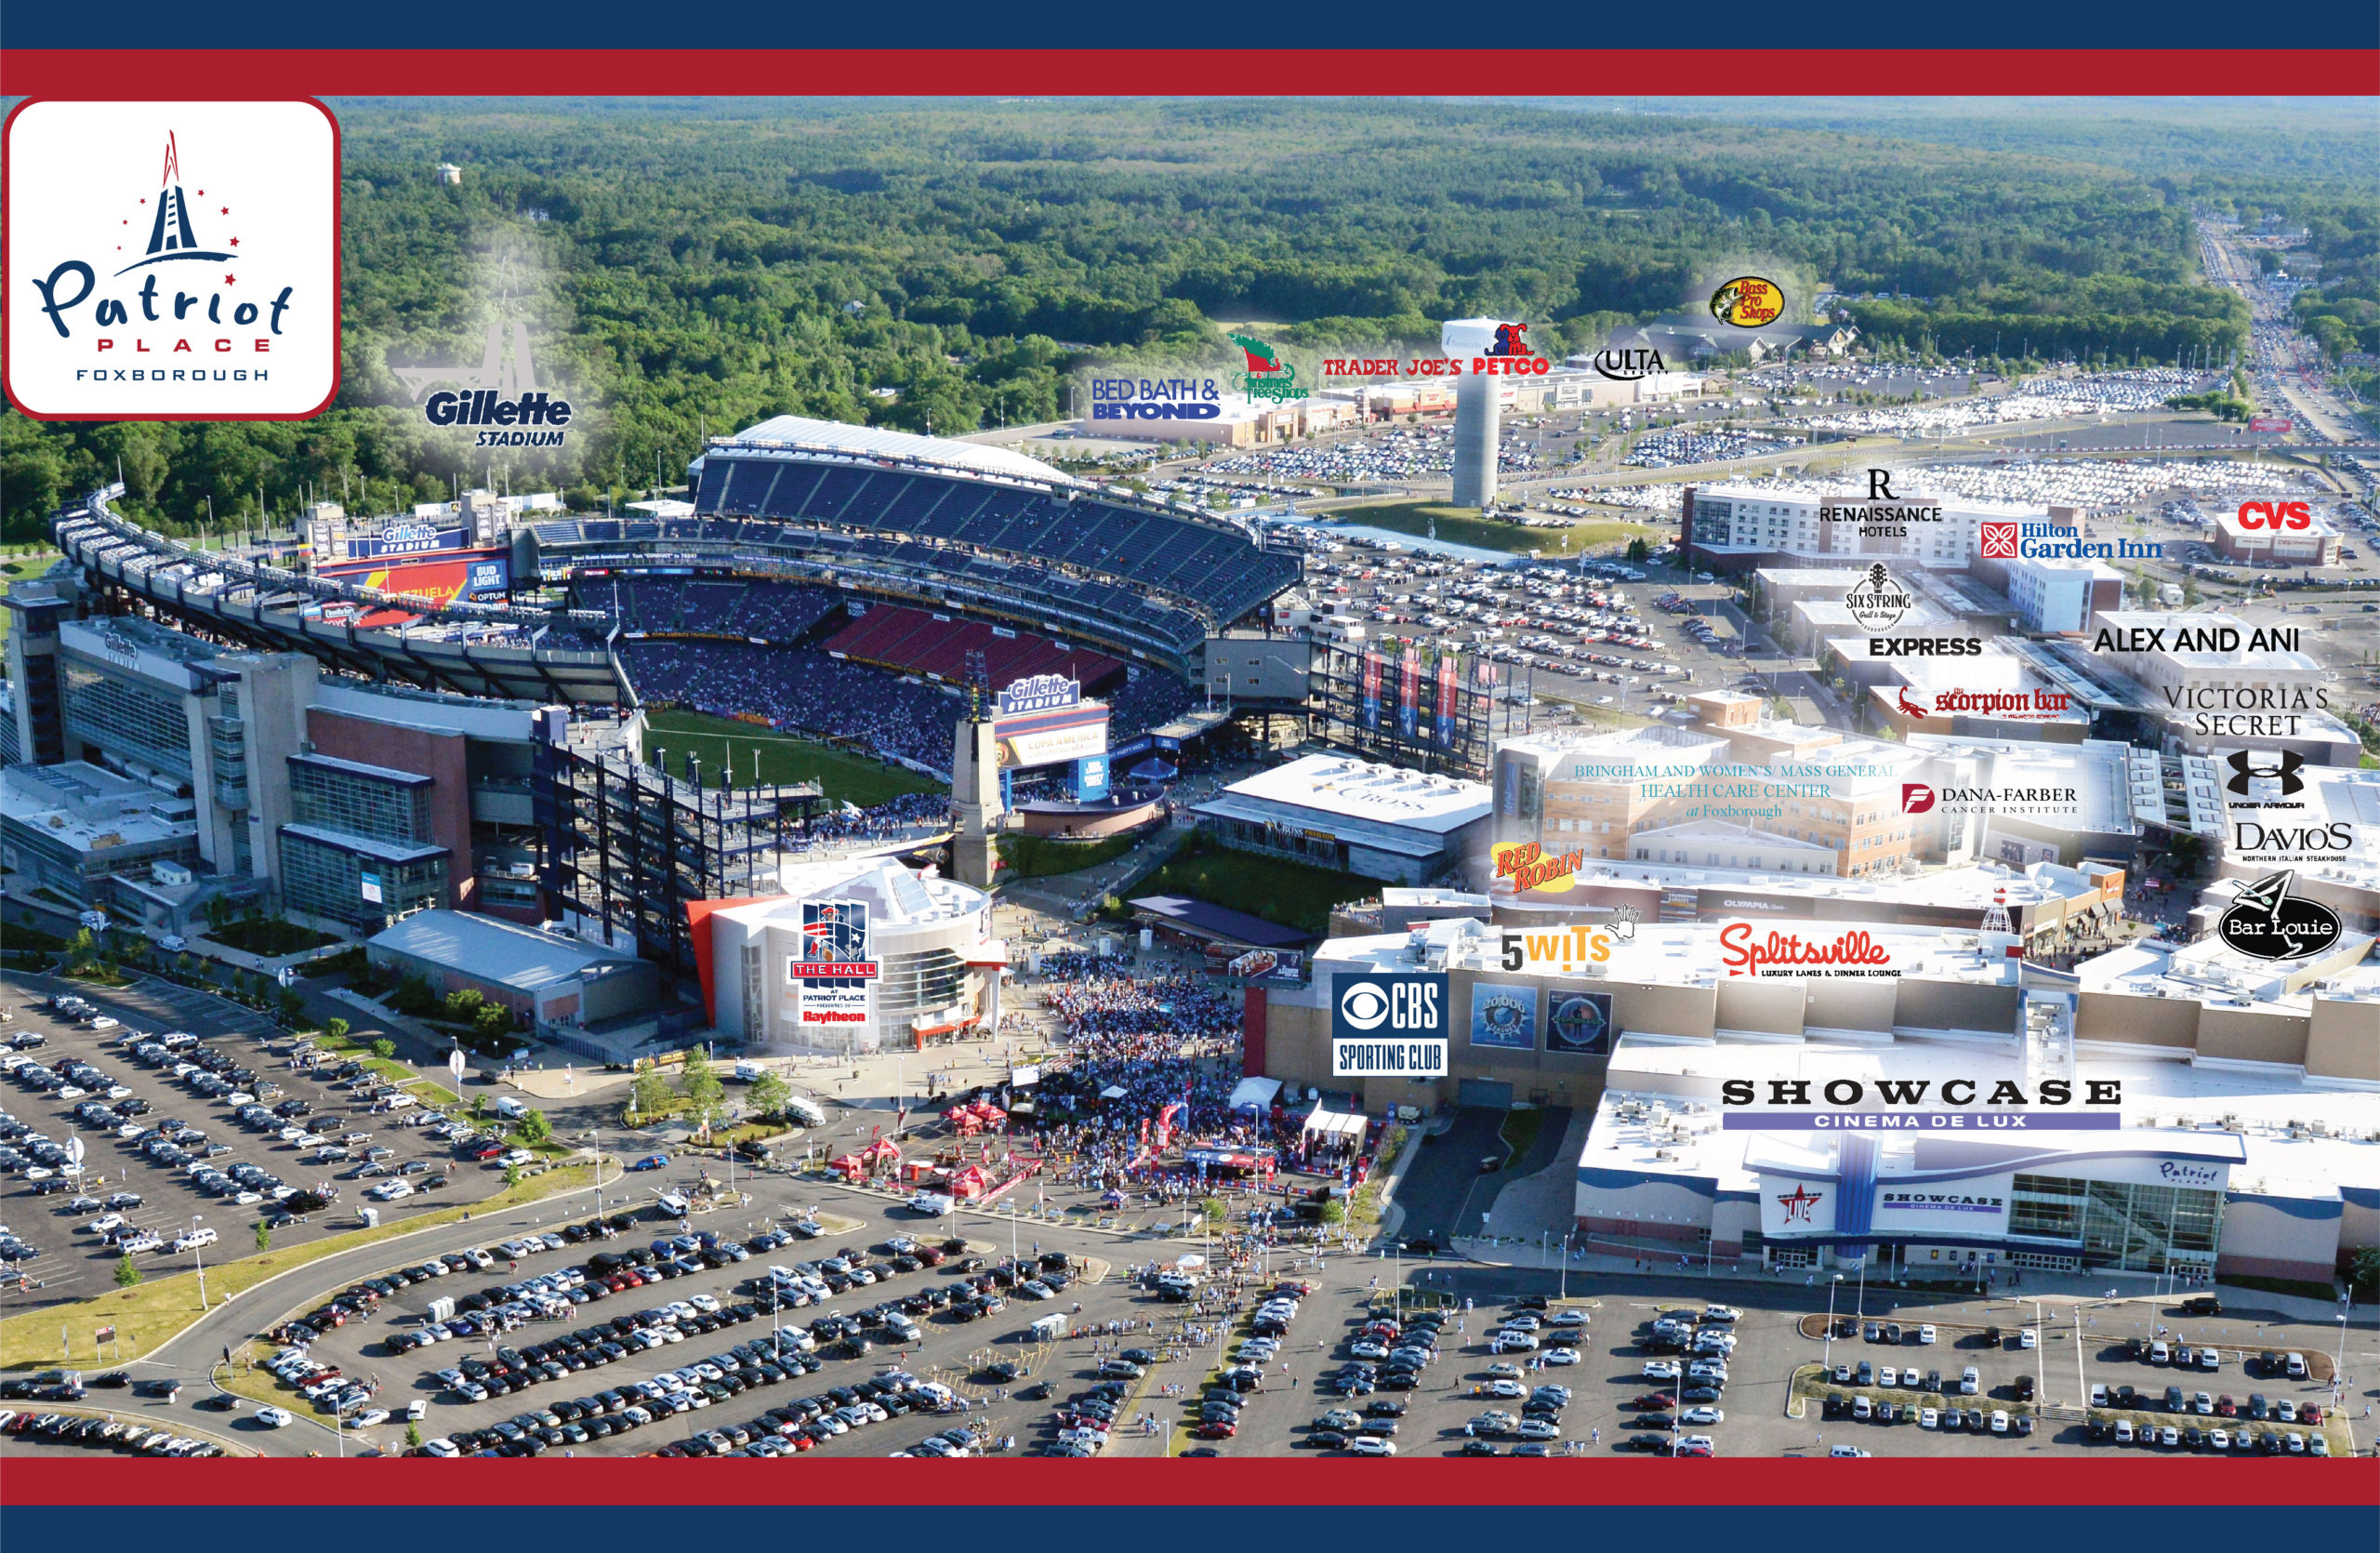 Patriot Place Aerial View. Retail Space at Patriot Place leasing available through Blackline Retail Group